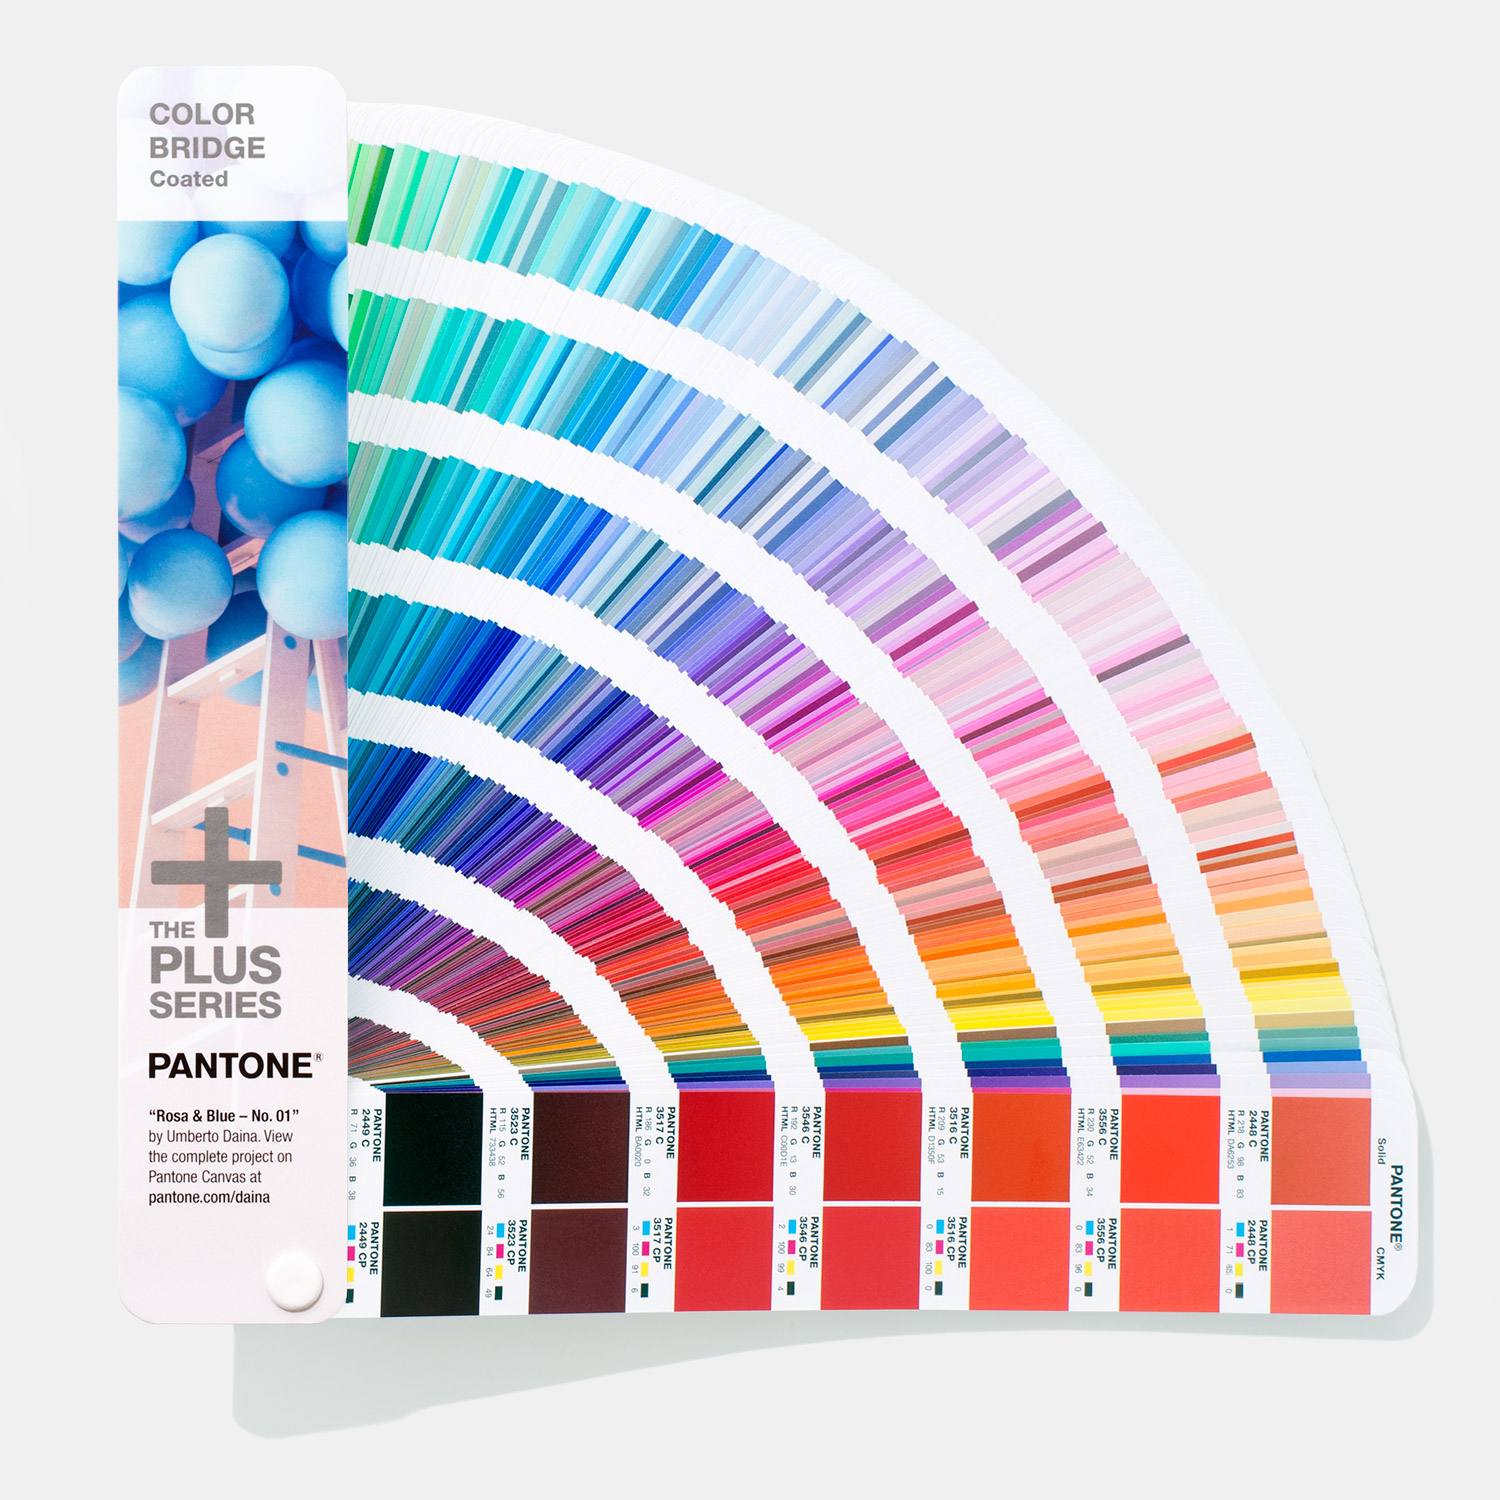 Image courtesy of Pantone